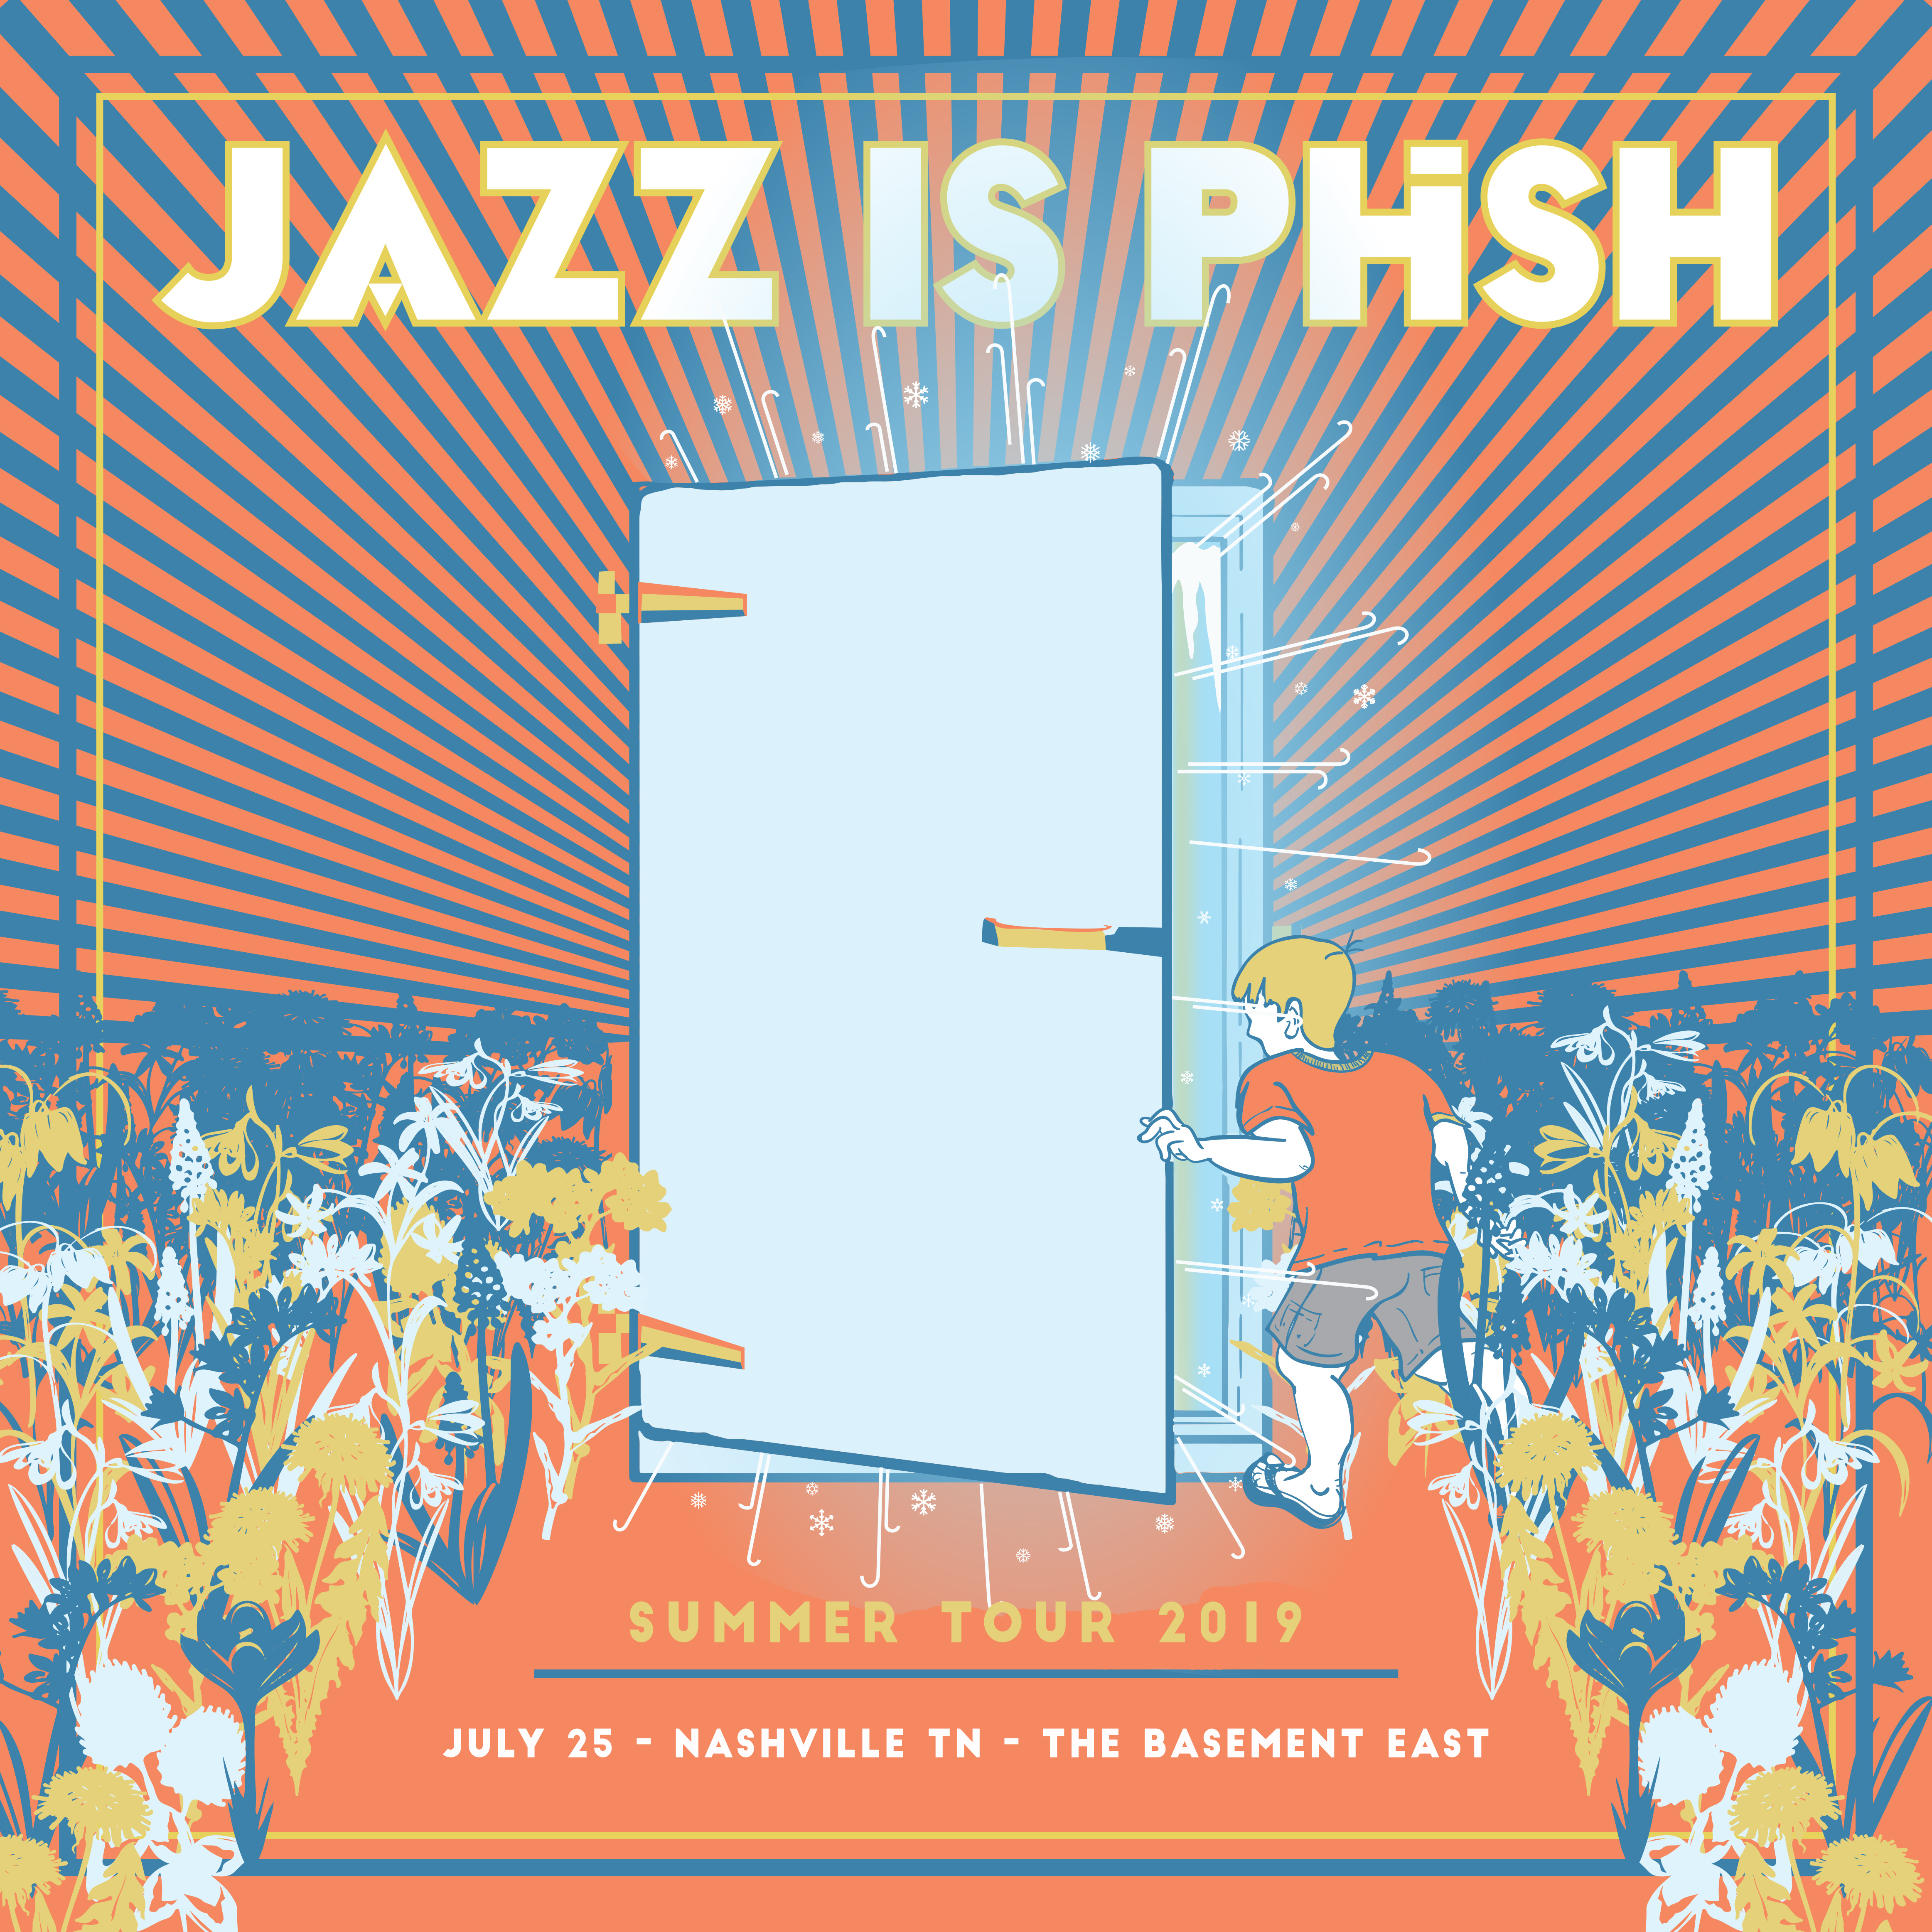 Jazz Is PHSH